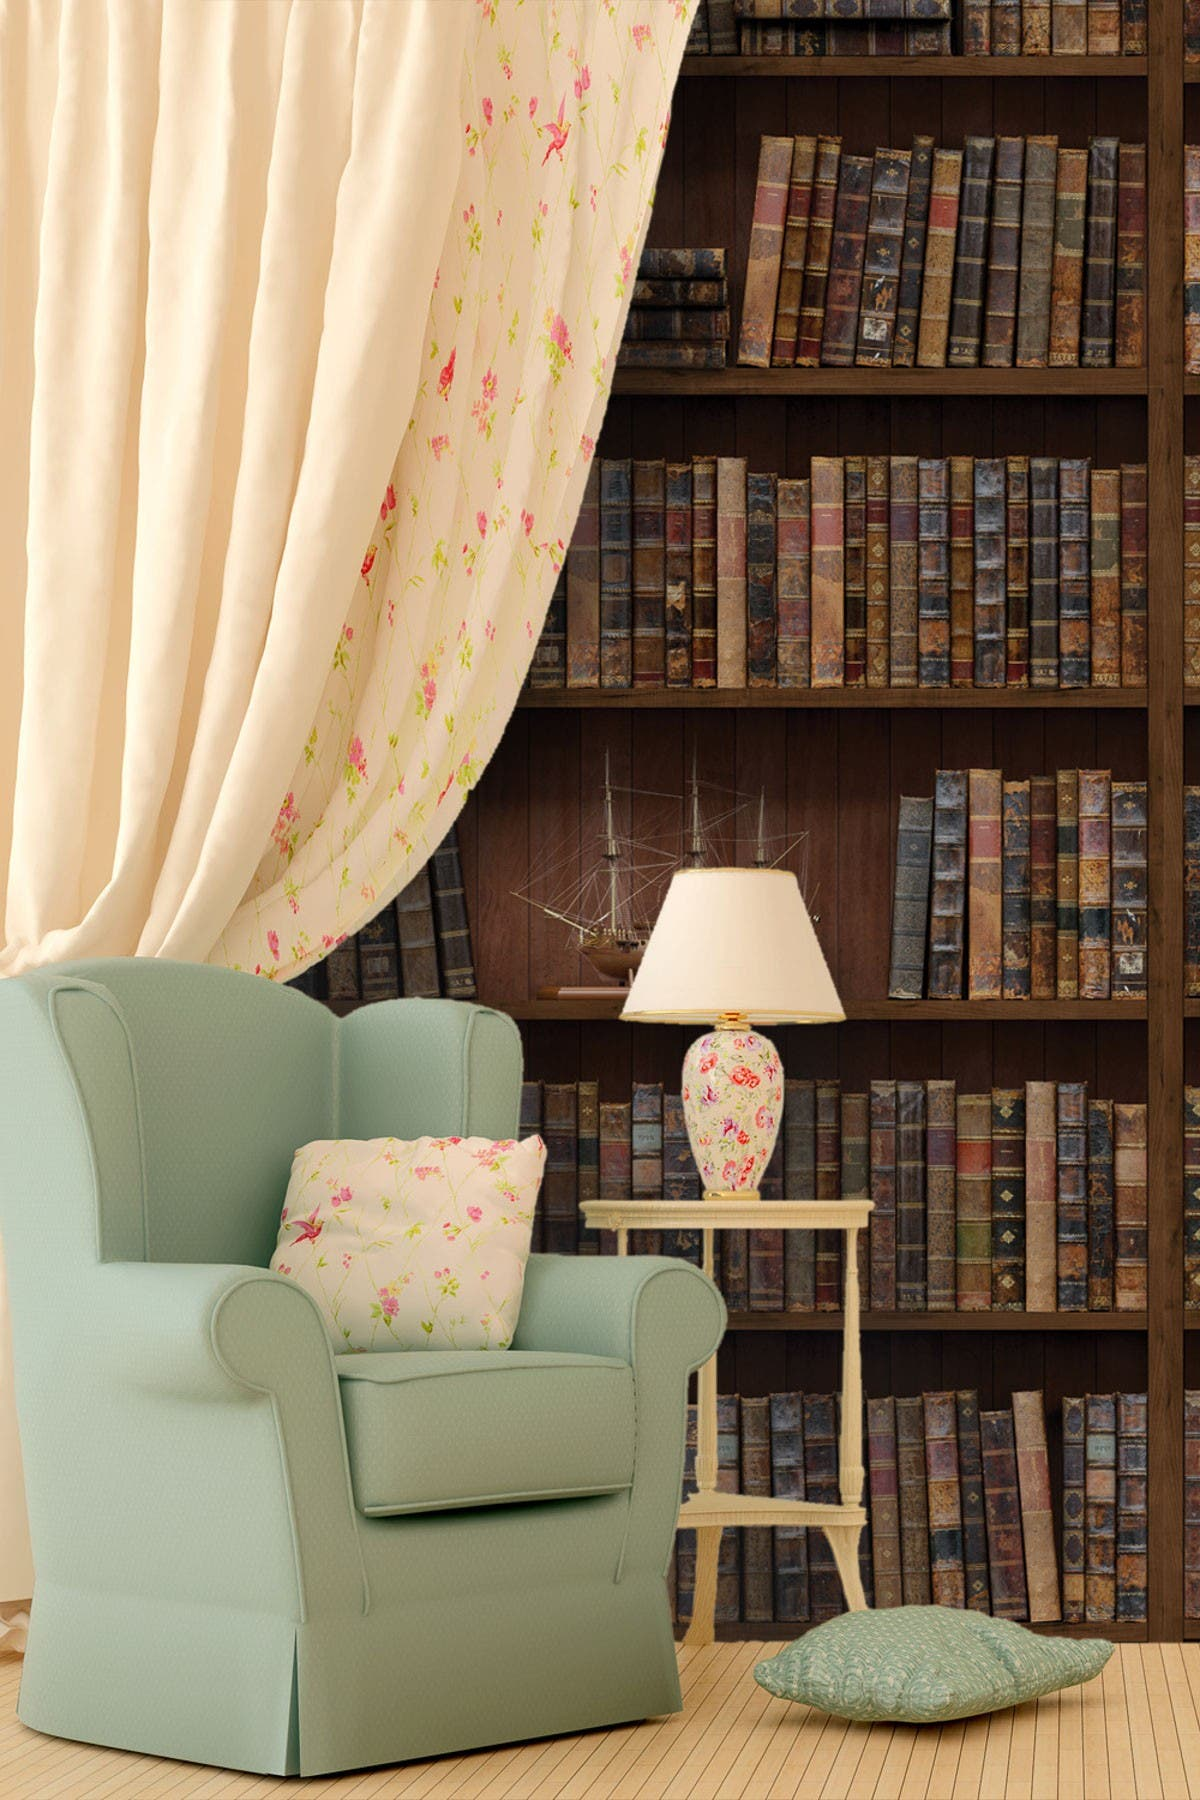 Image of WalPlus Brown Wall Sticker Vintage Bookshelf Wall Decal